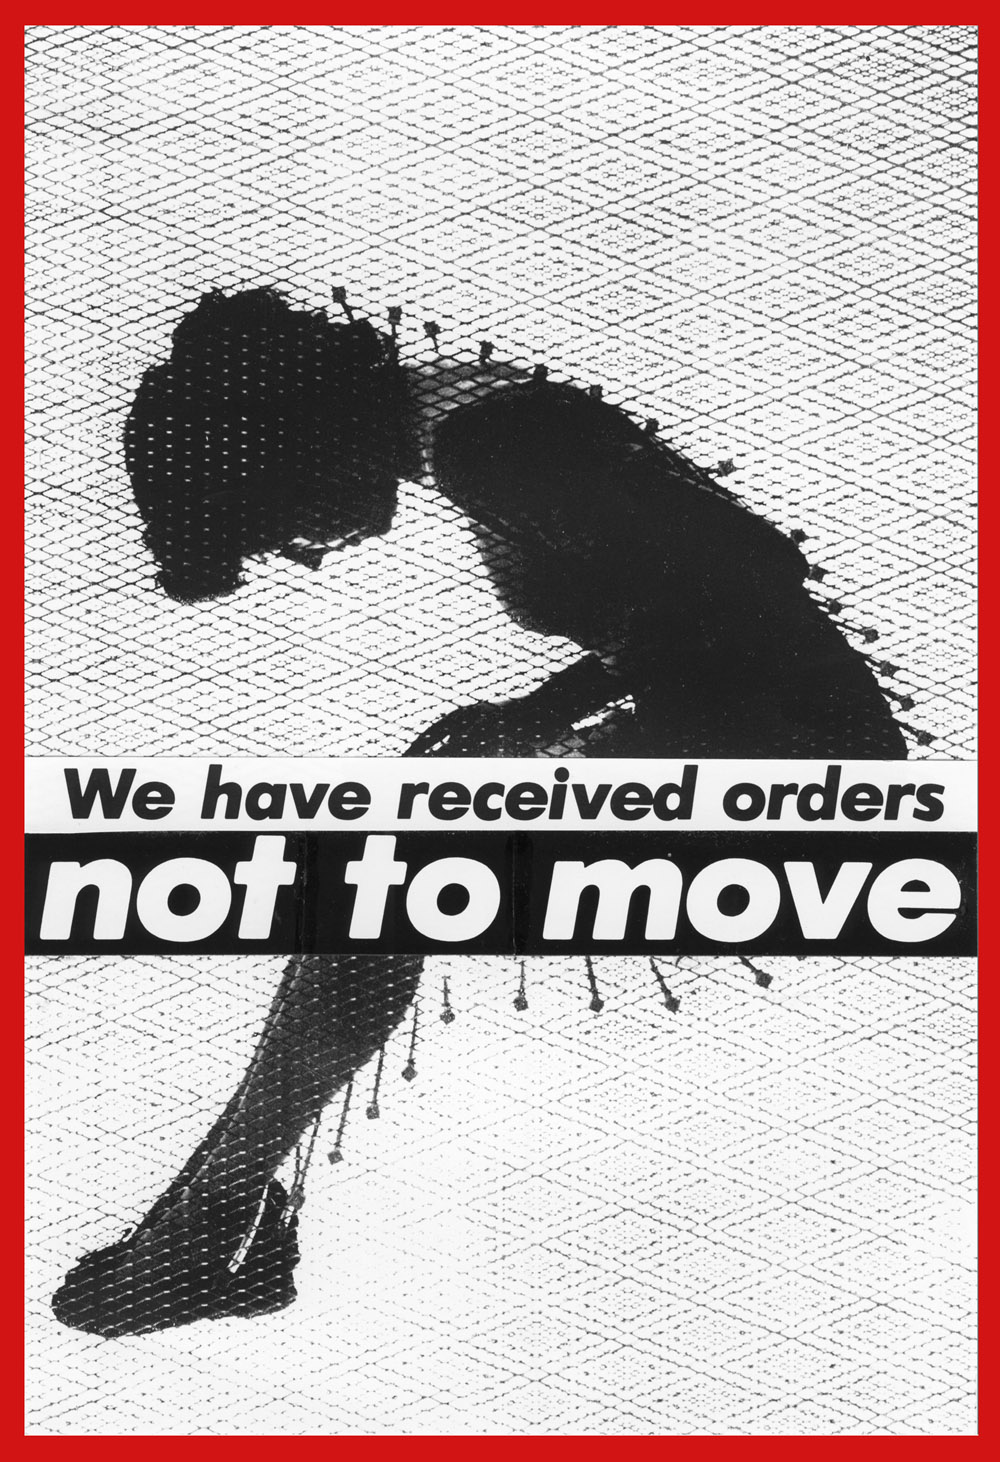 Barbara Kruger. 'Untitled (We have received orders not to move)' 1982